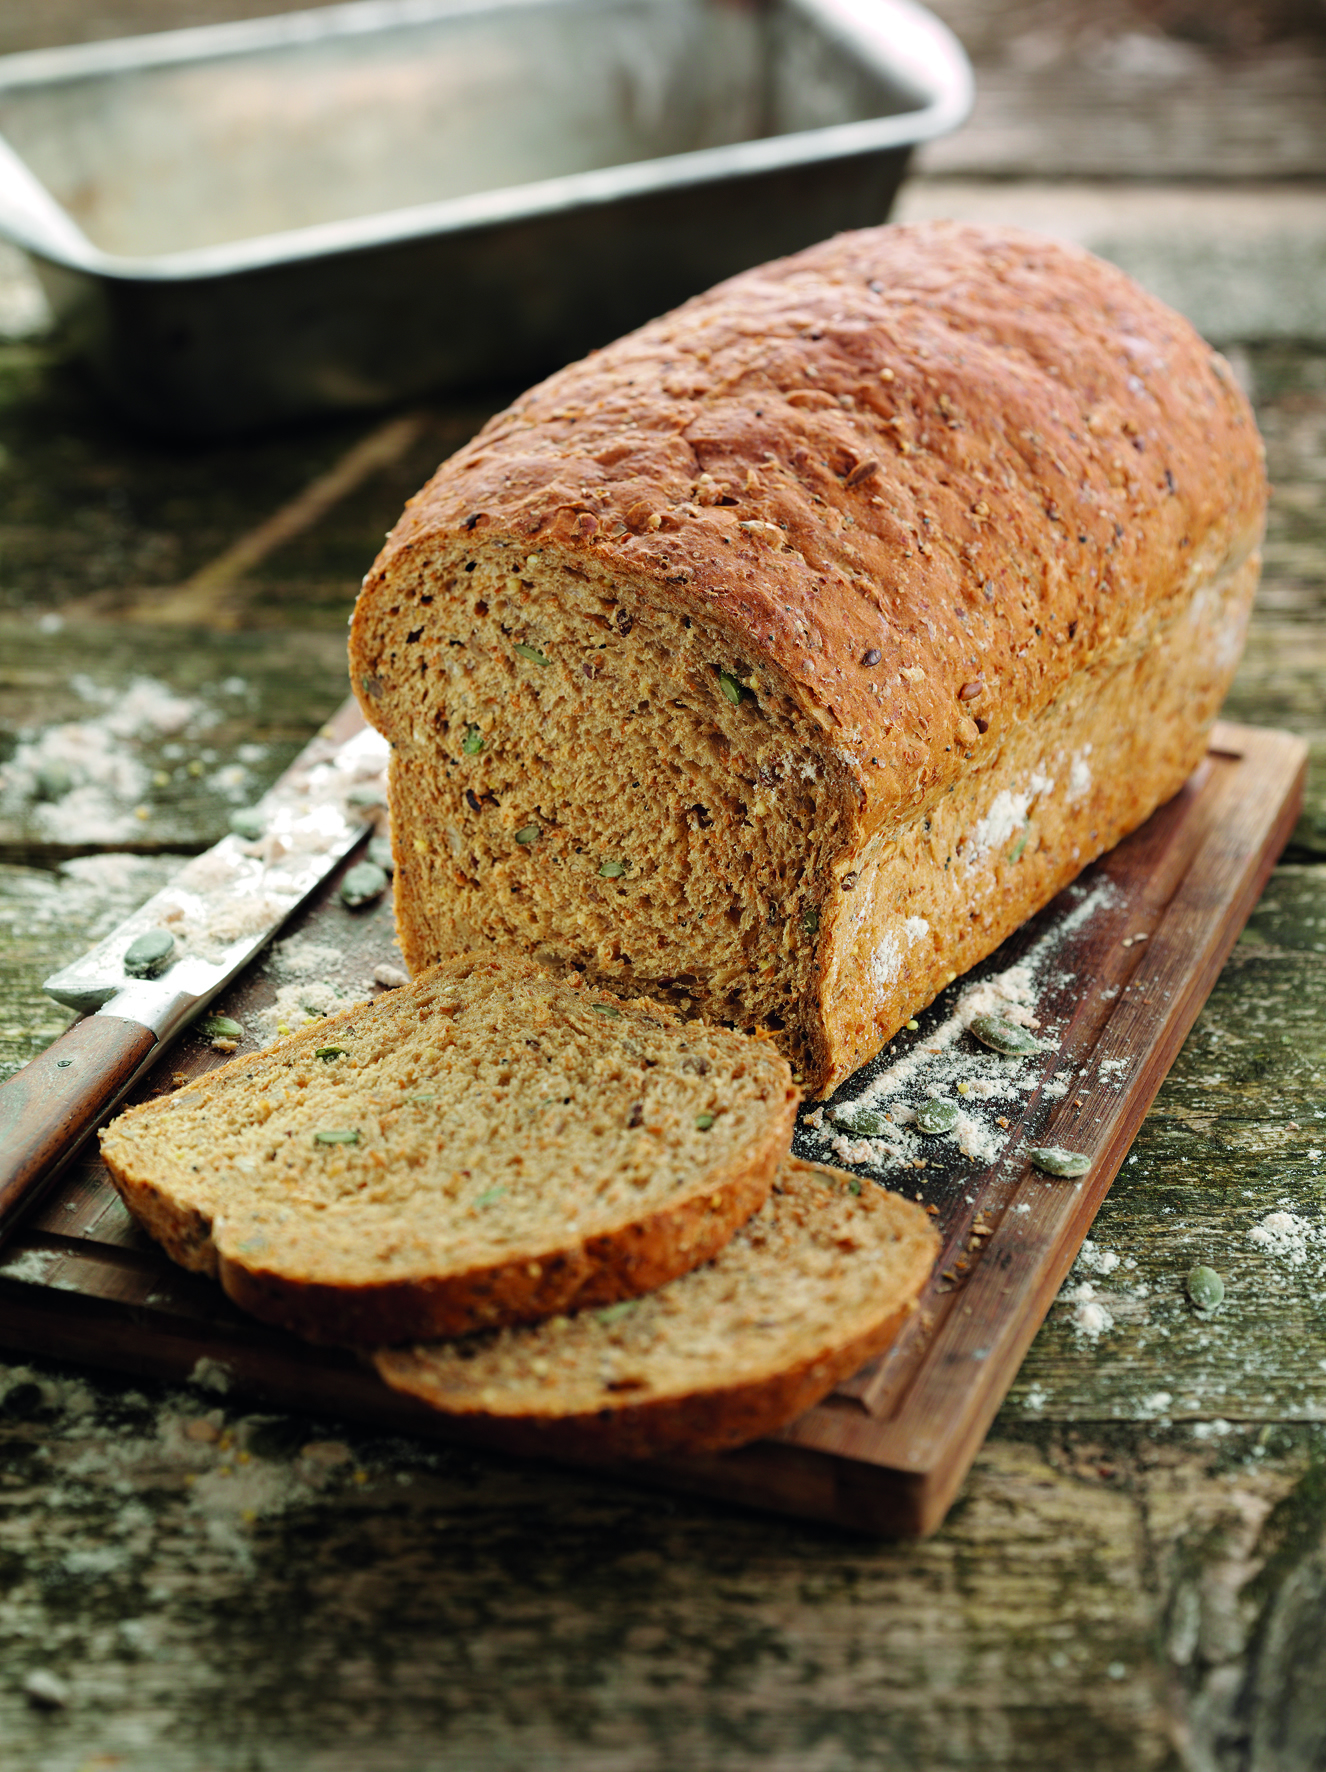 Baking Bad: Eight Tips to Minimise the Bread Disasters, and how to make the Perfect Loaf